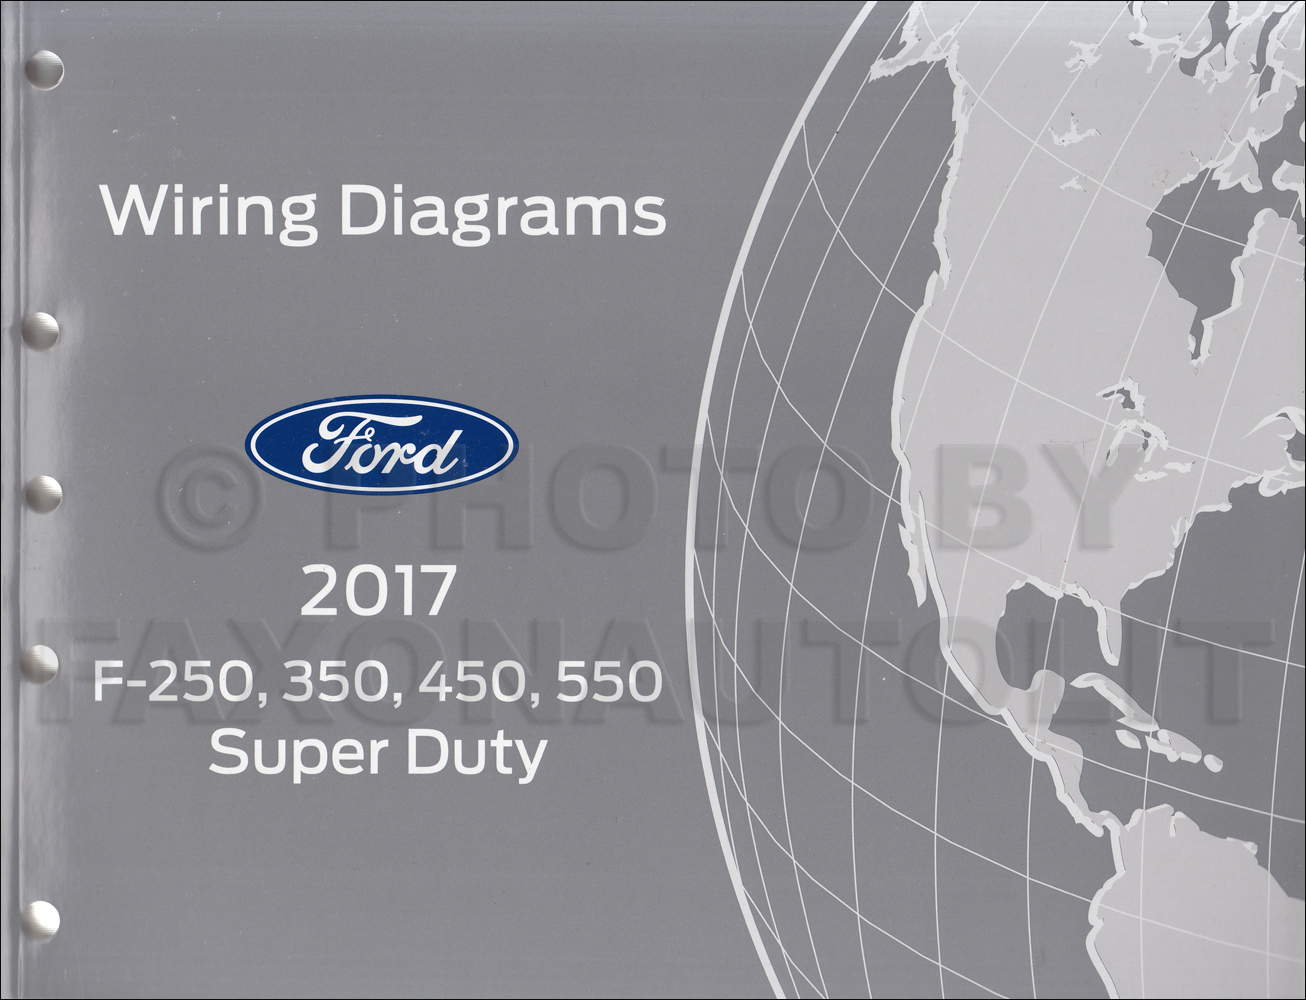 2017 Ford F250-F550 Super DutyTruck Wiring Diagram Manual Original